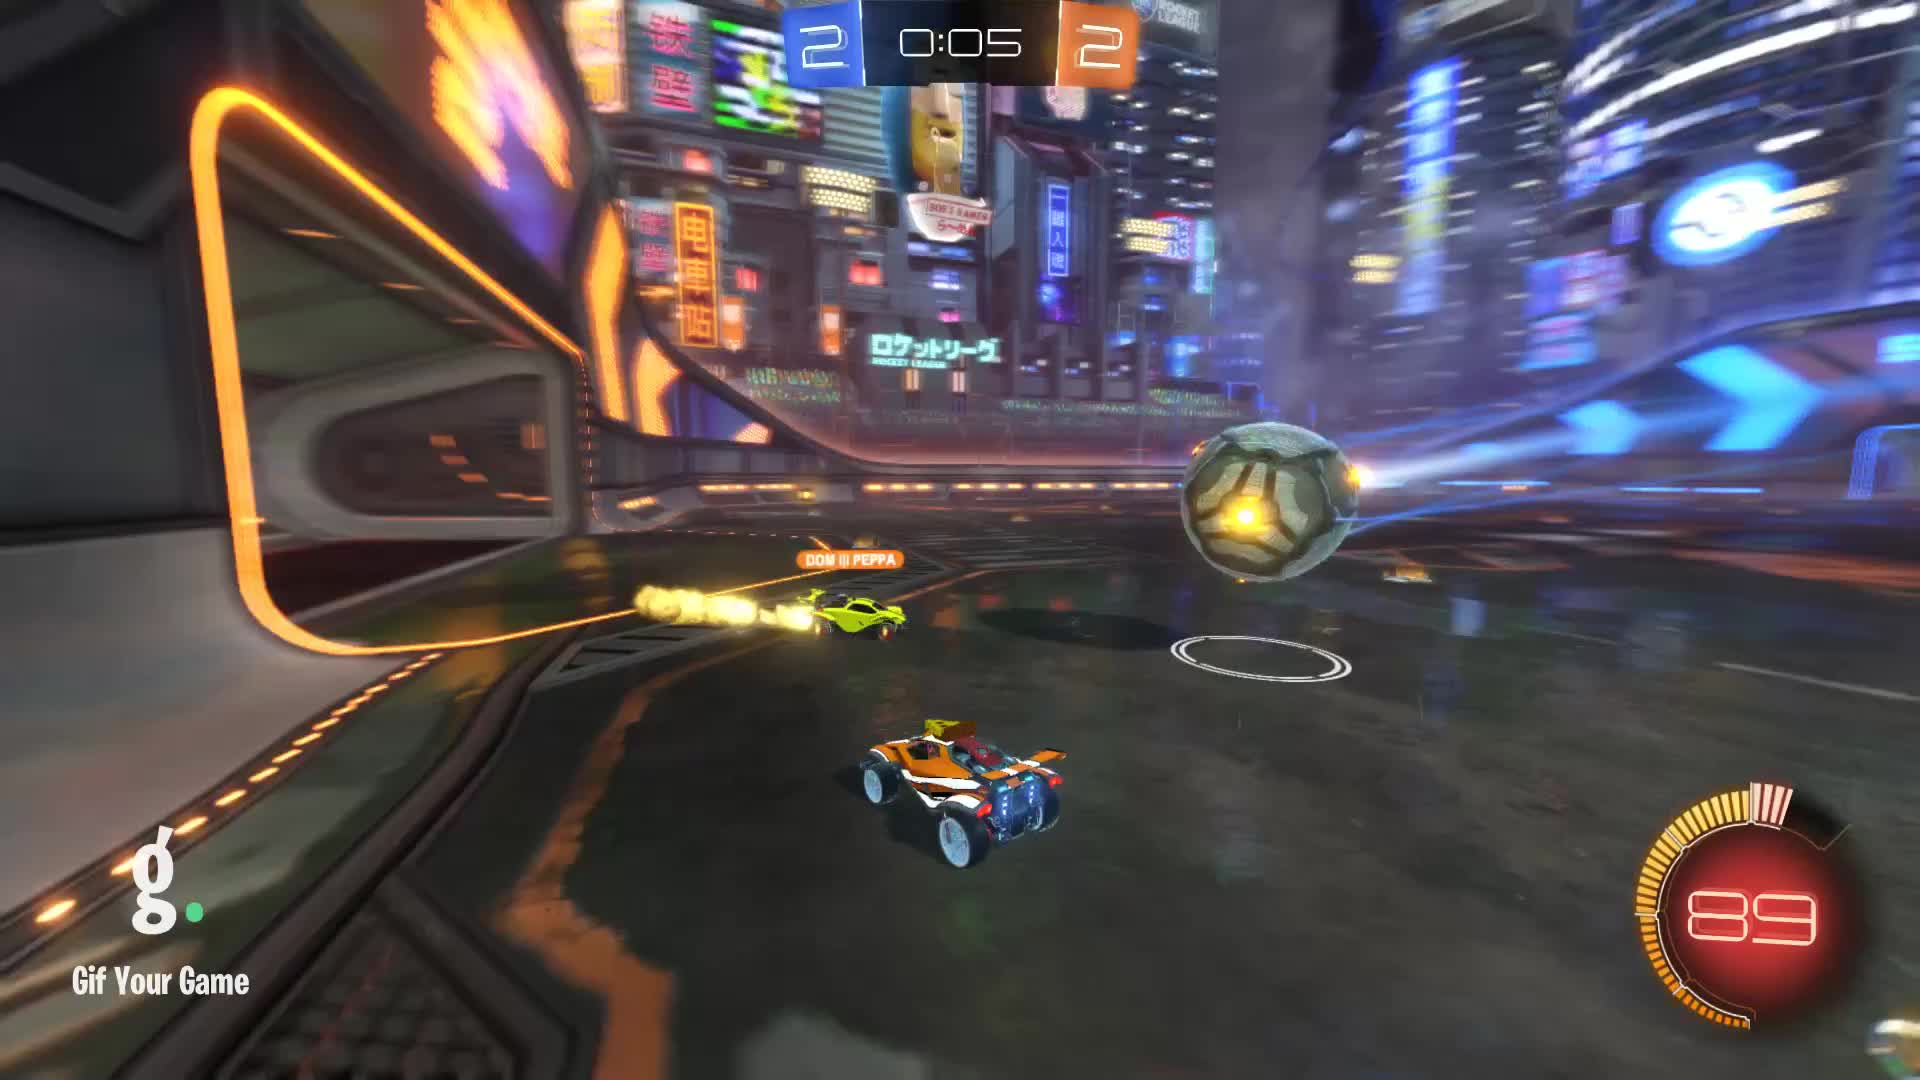 DiPOY, Gif Your Game, GifYourGame, Goal, Rocket League, RocketLeague, Goal 5: DiPOY GIFs